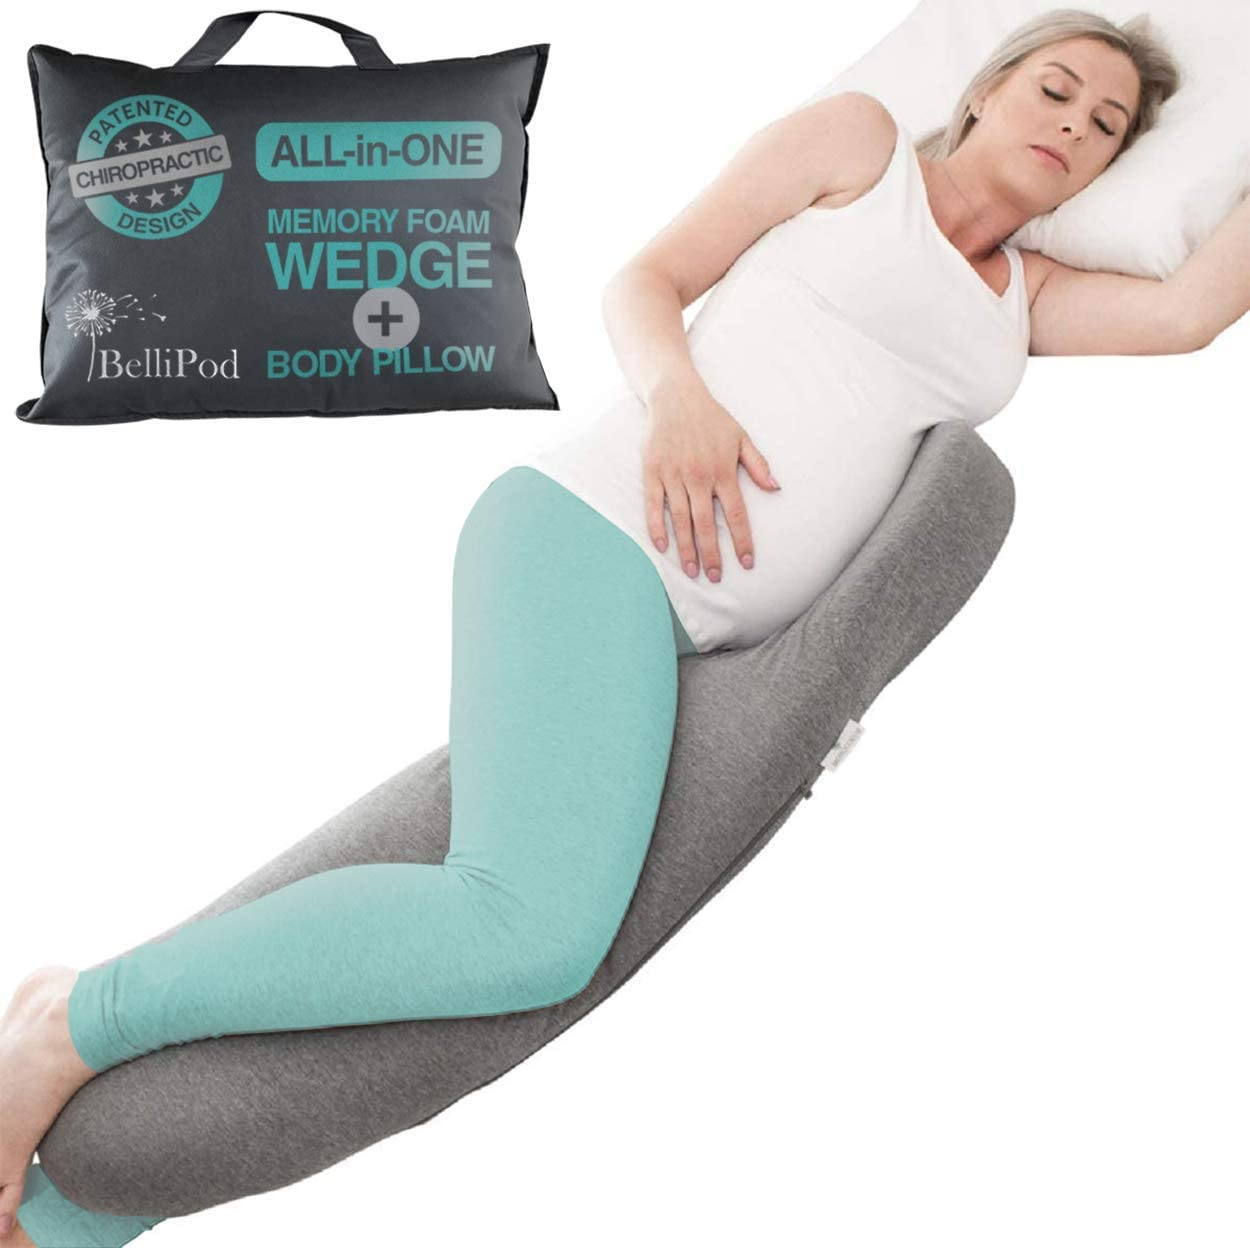 2 in1 Pregnancy Pillows, Chiro Designed Maternity Pillow with 100% Cotton Cover, Pregnancy Body Pillow & Pregnancy Wedge to Support Belly, Knees and Hips - Portable Full Body Pillow for Pregnant Women